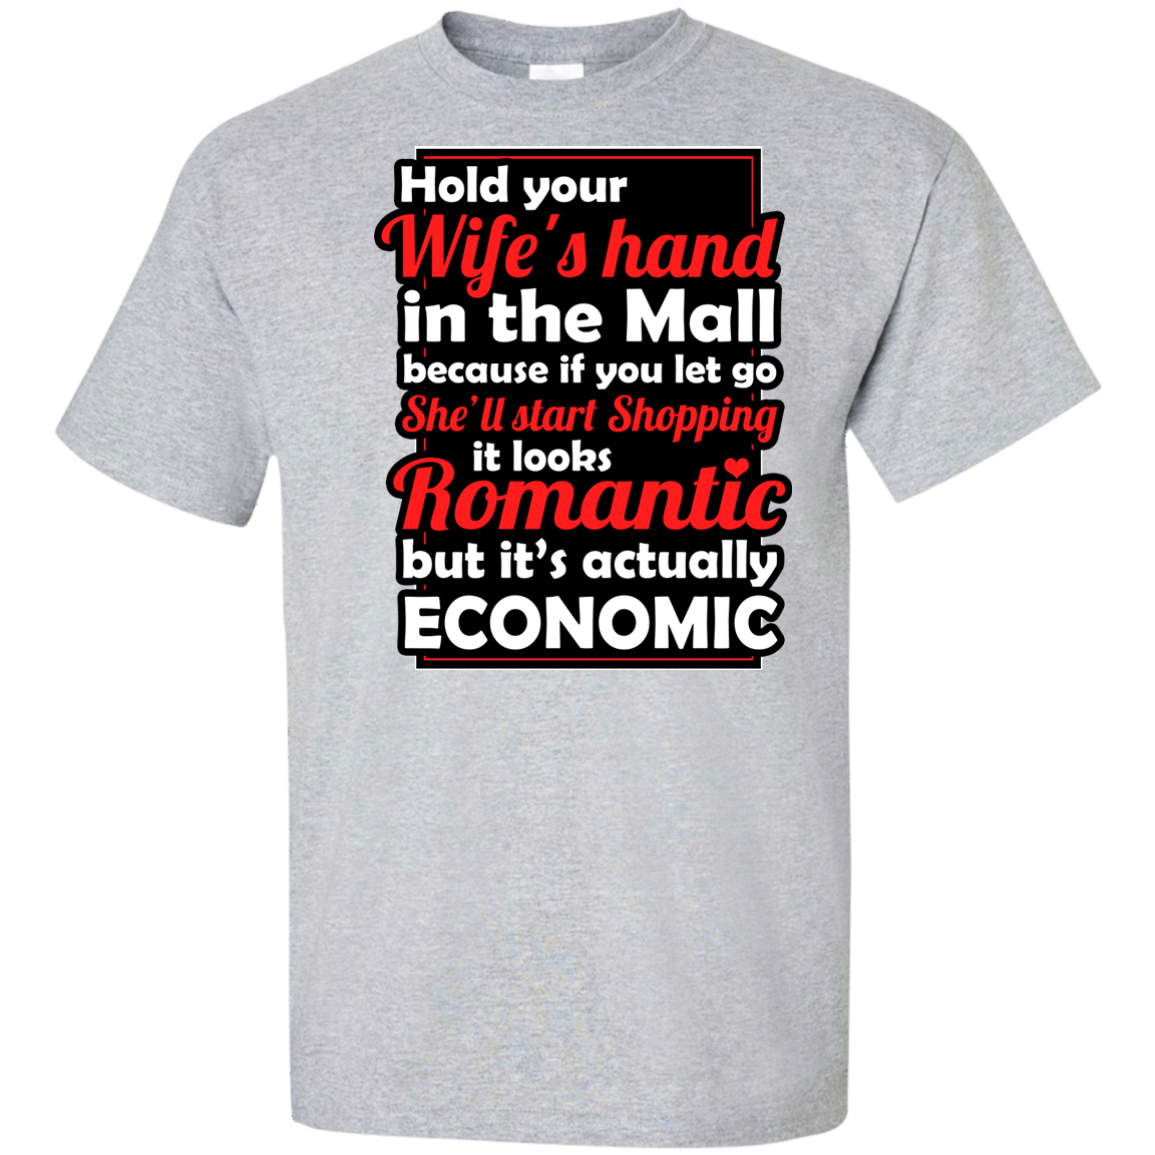 Hold Your Wife's Hand Custom Tall Ultra Cotton T-Shirt